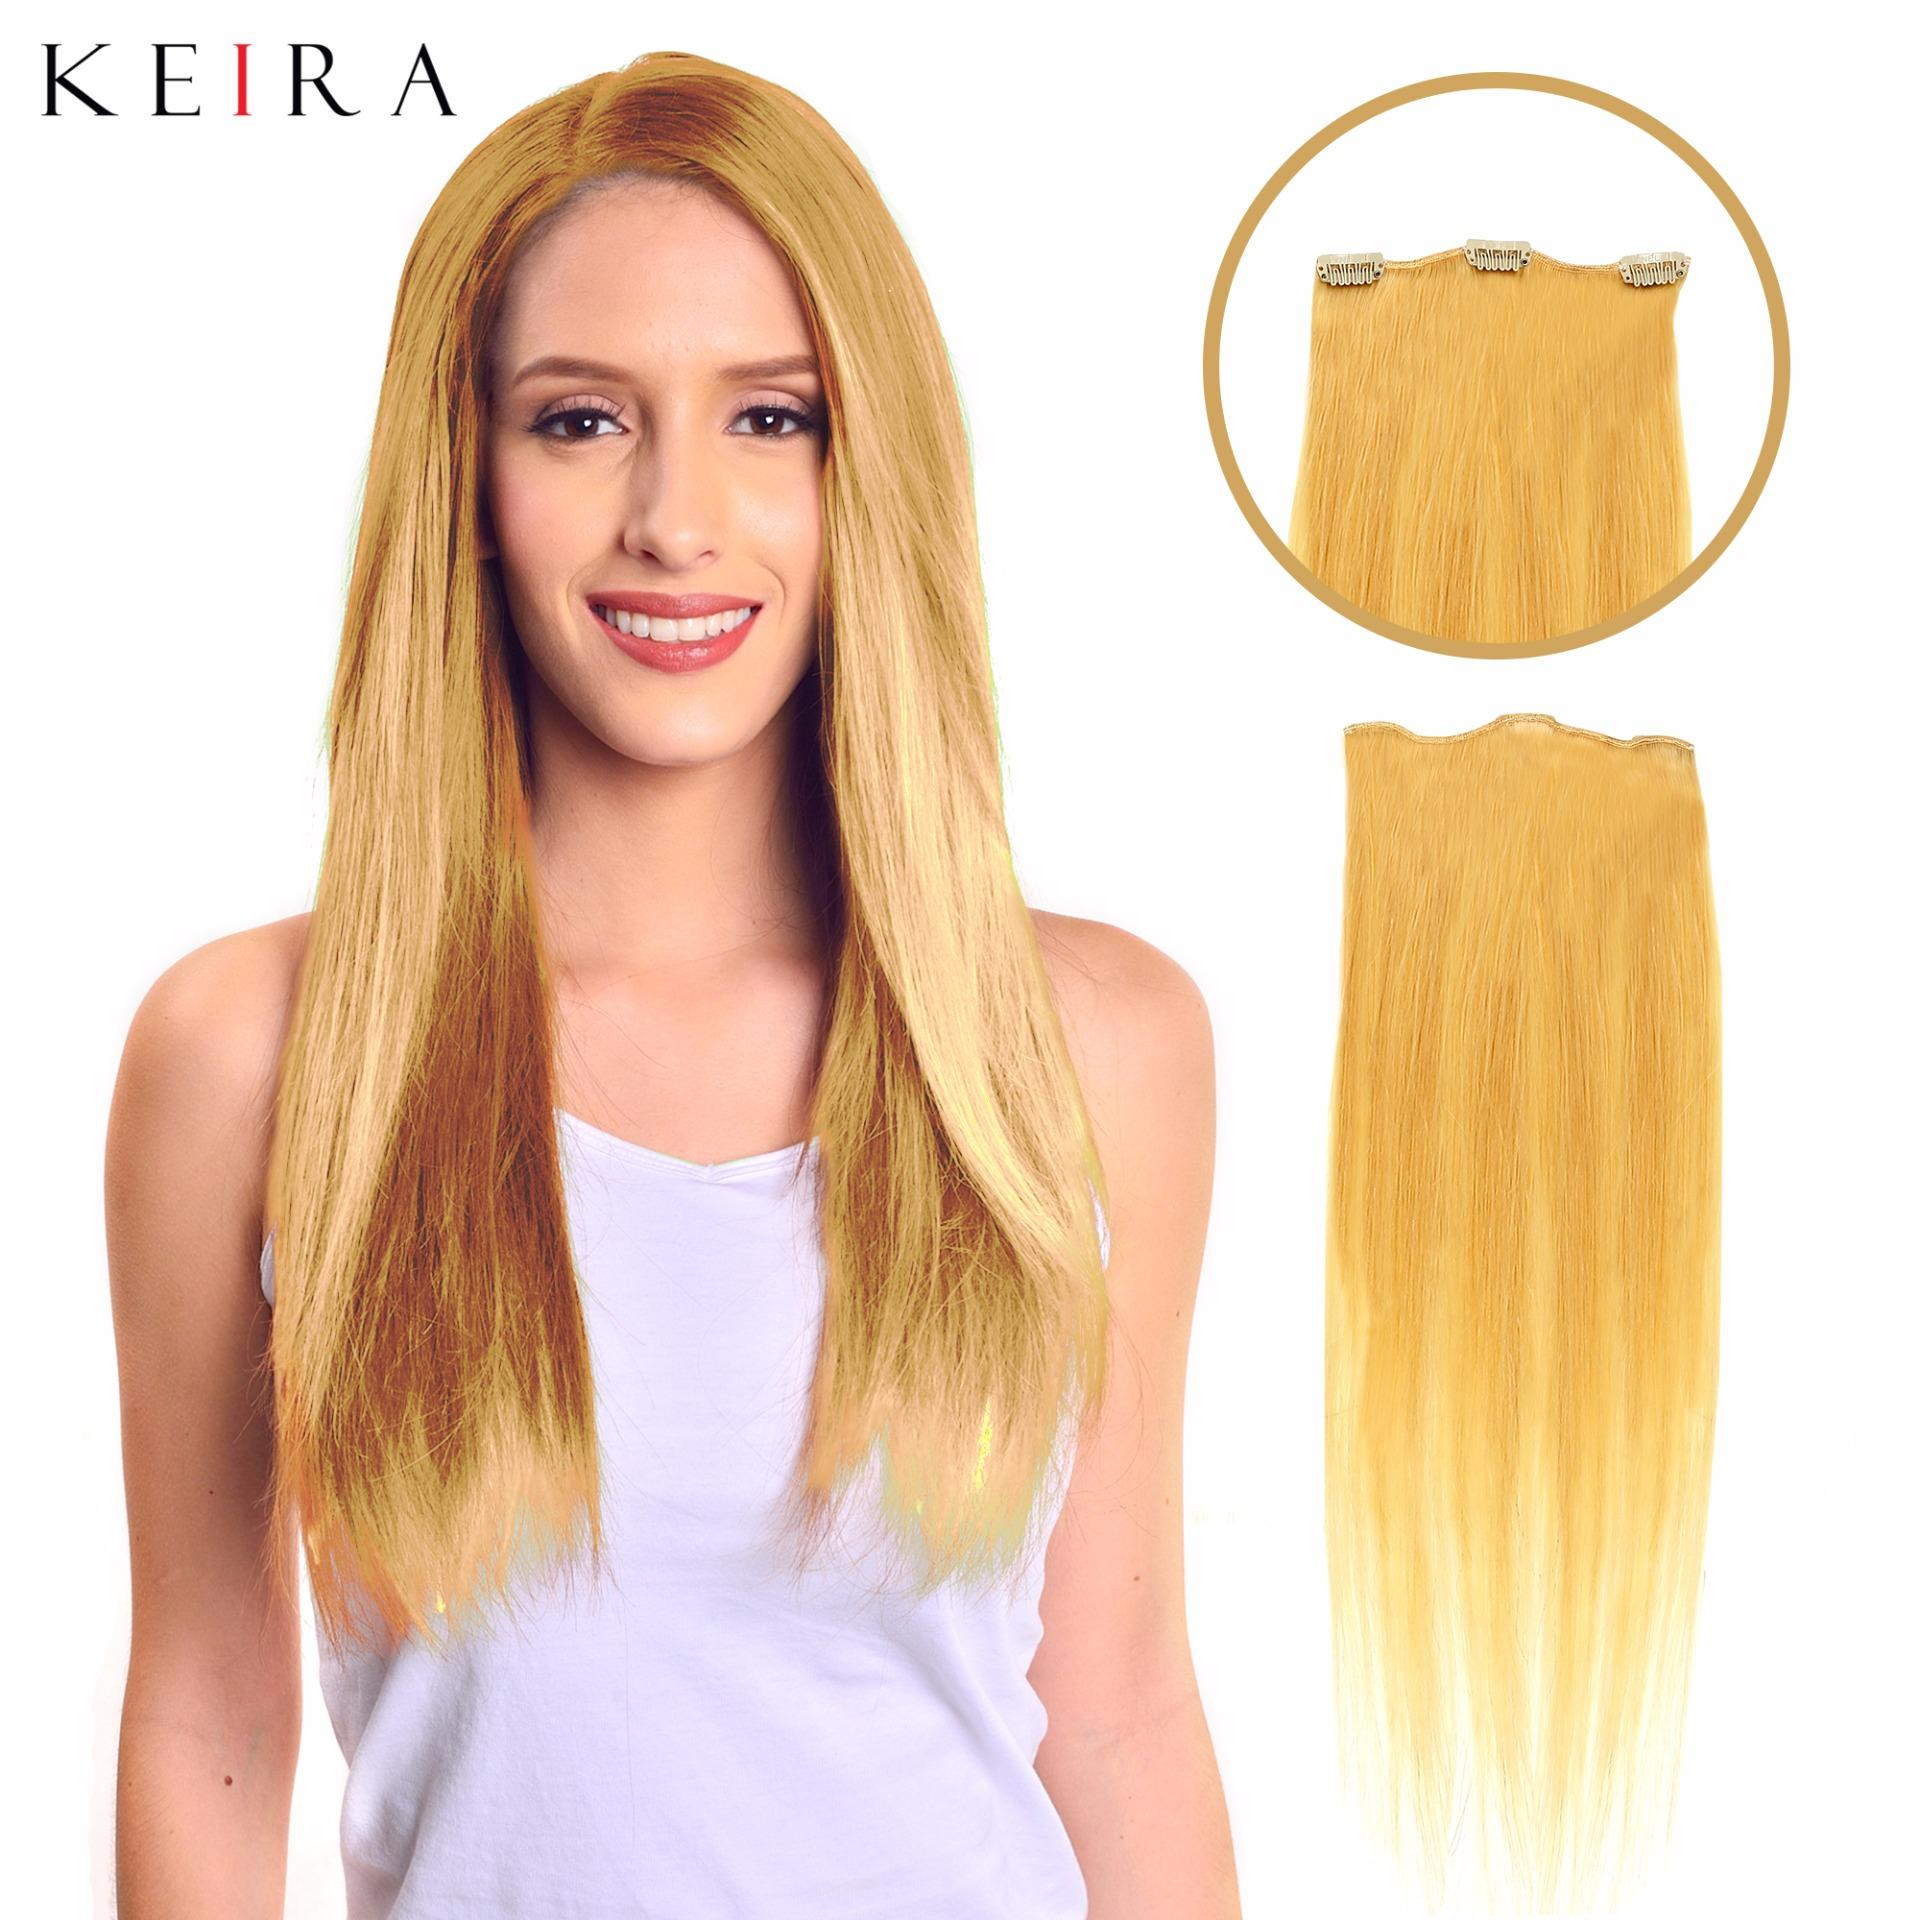 Philippines Keira Clip On Hair Extensions 16 Long 3 Clips